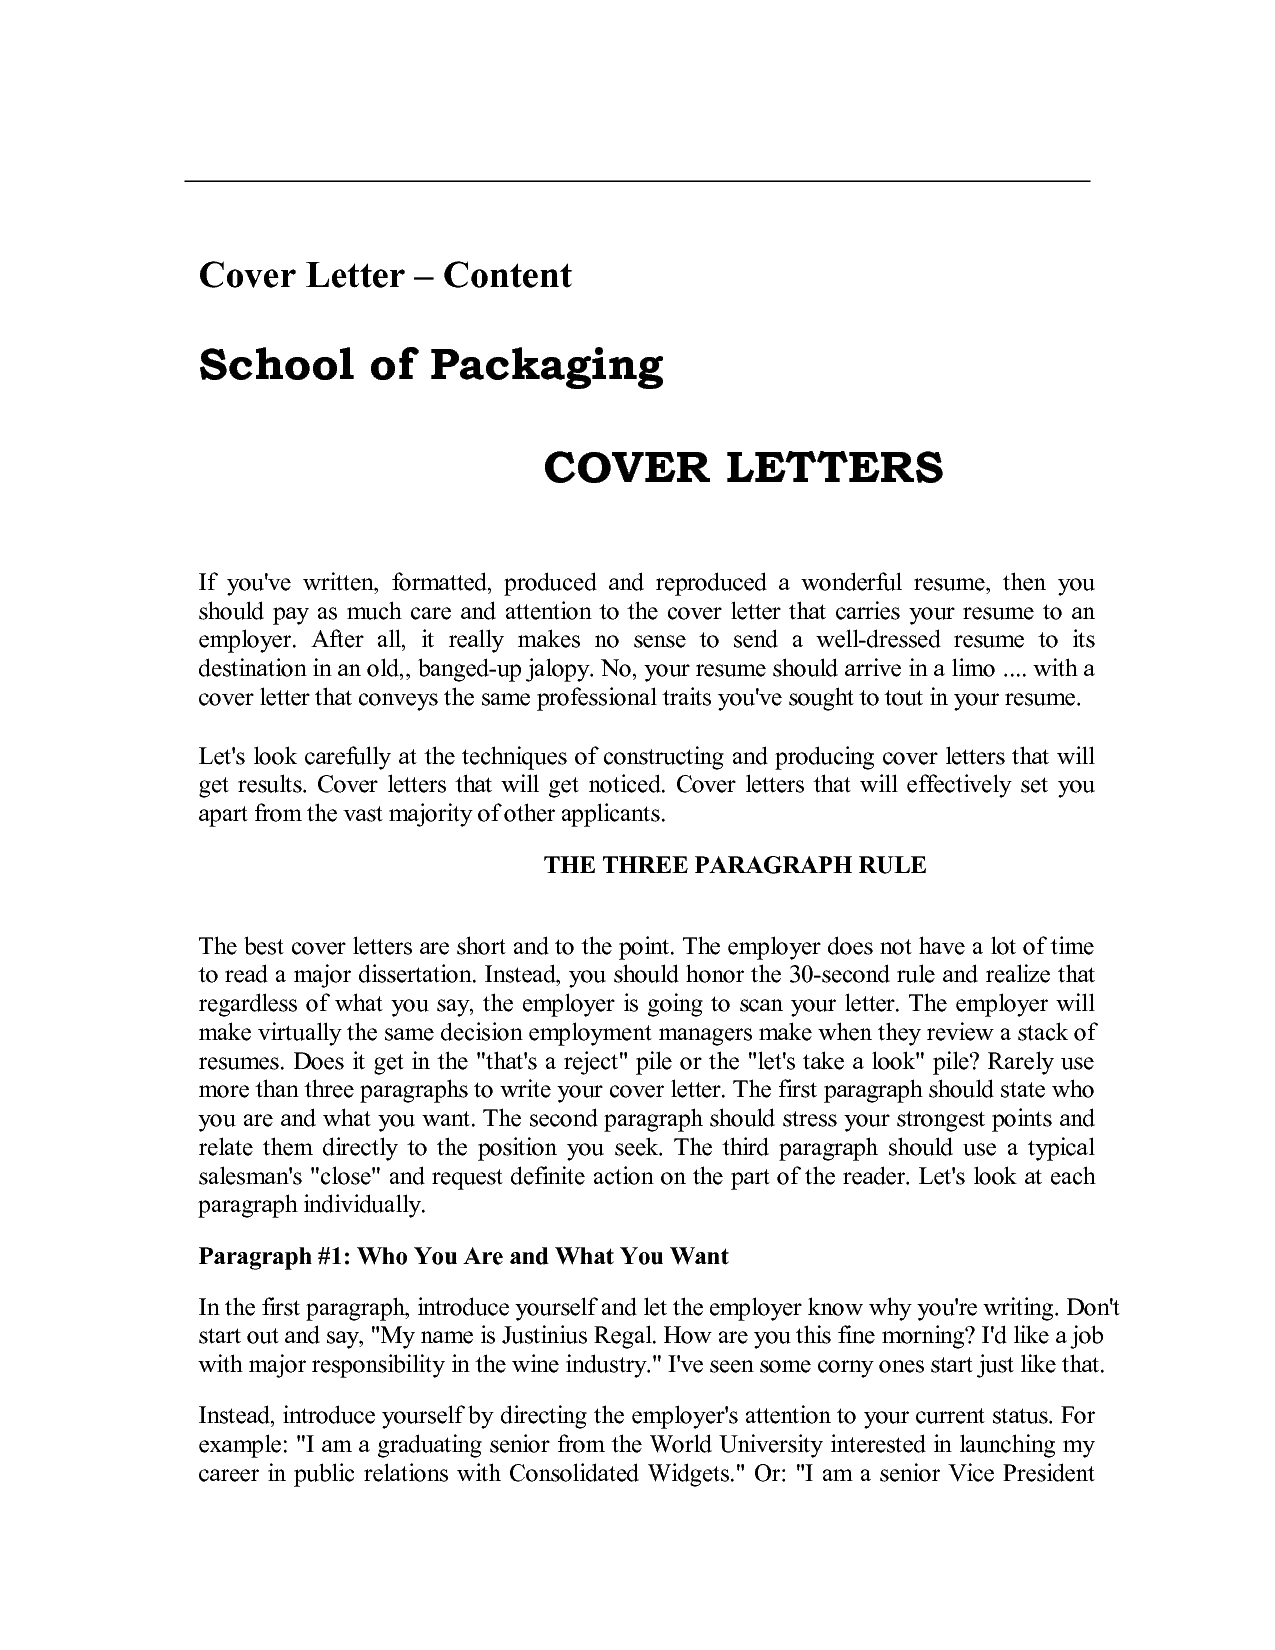 how to write a cover letter for changing careers - cover letters pdf with resumecover letter for resume cover